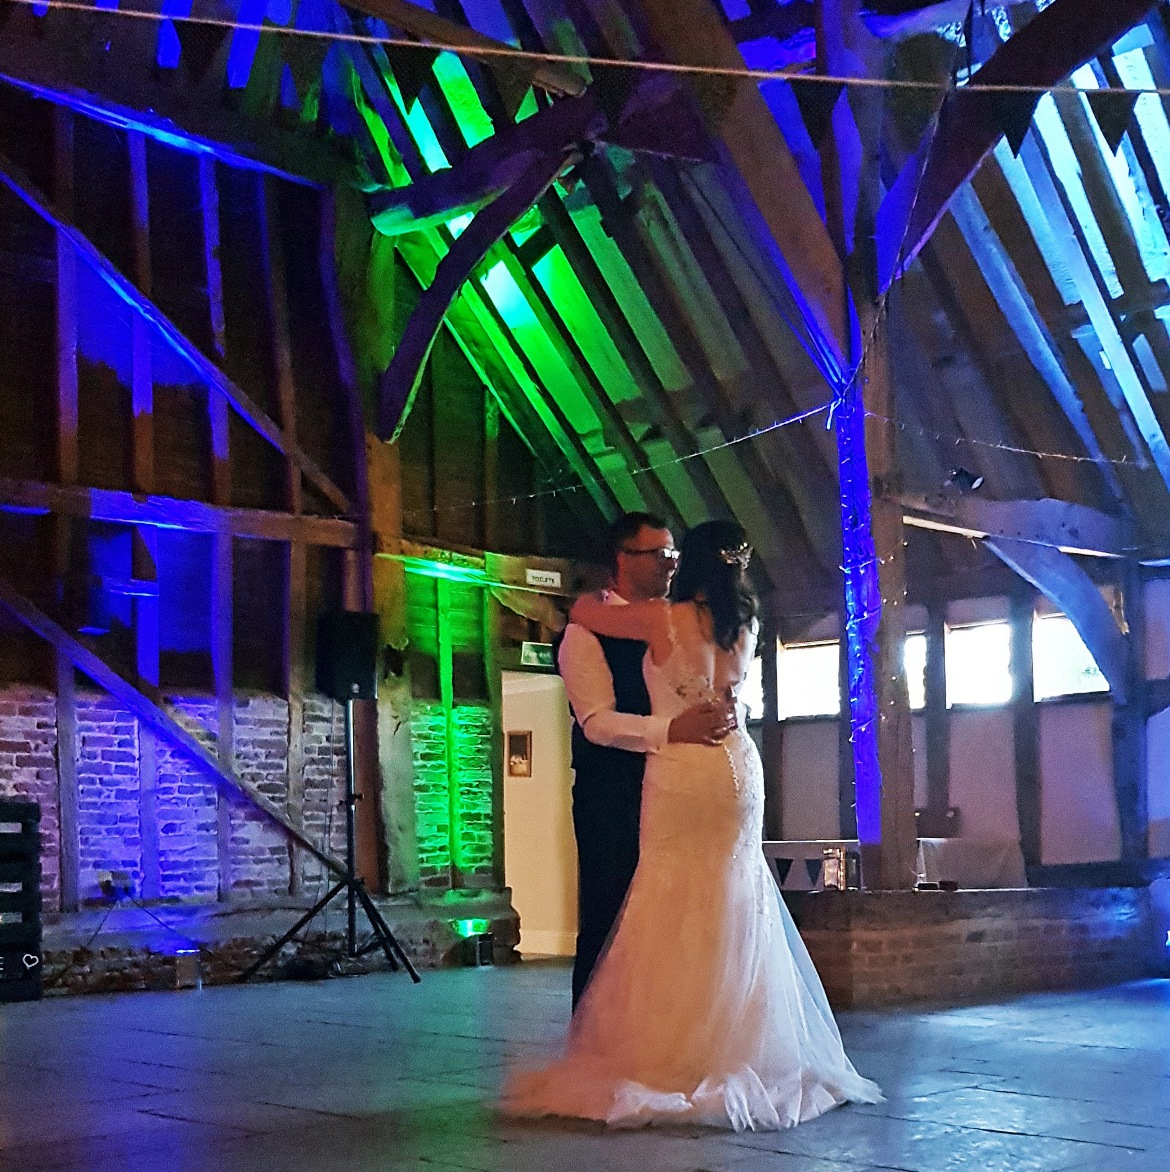 Keeleigh and Kyle's Wedding - June 2018 Monthly Recap by BeckyBecky Blogs